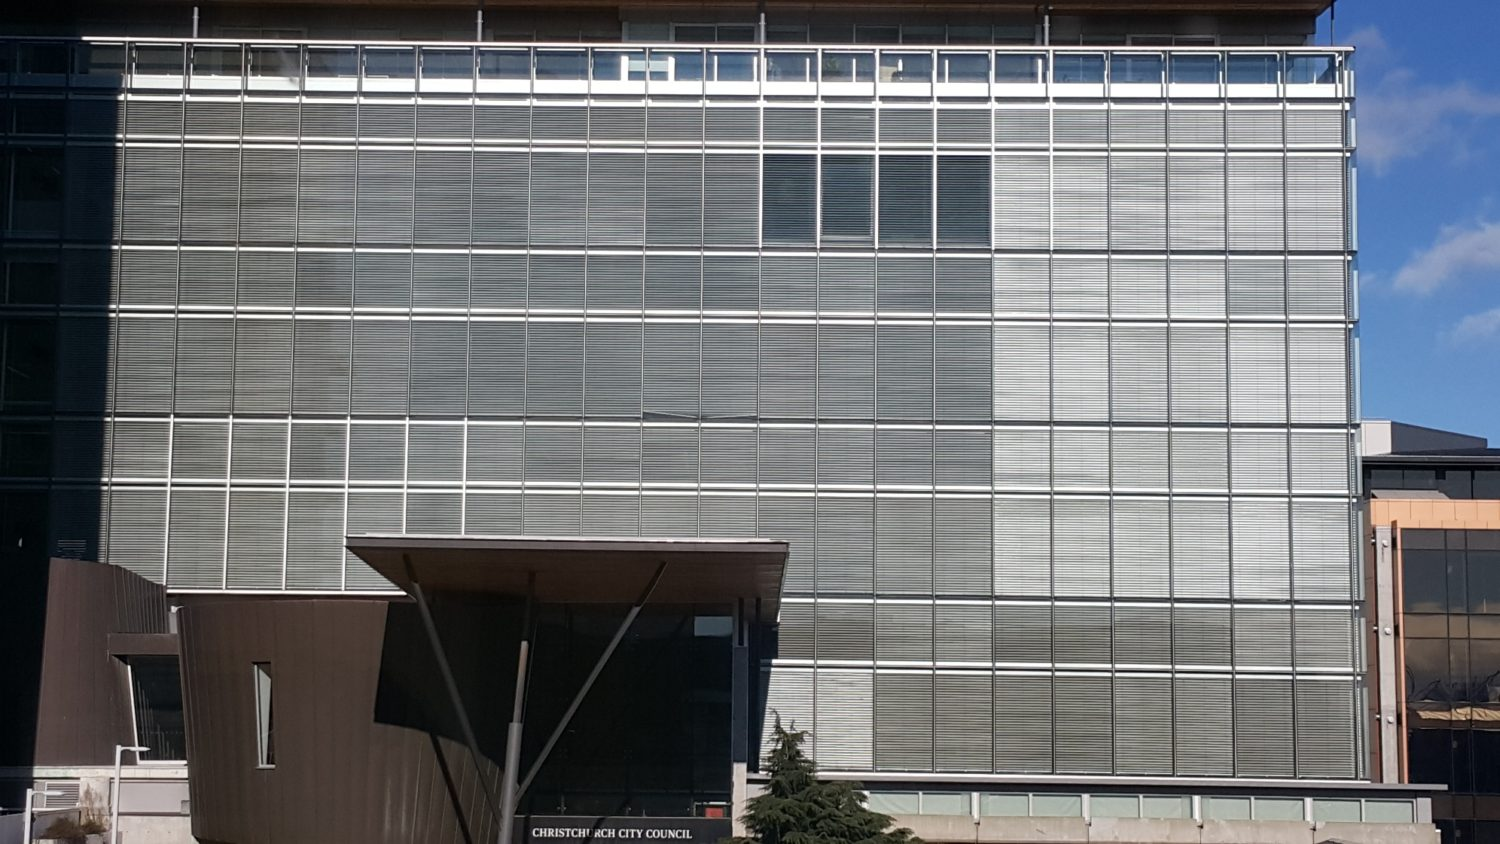 View of Christchurch City Council building, windows covered in blinds